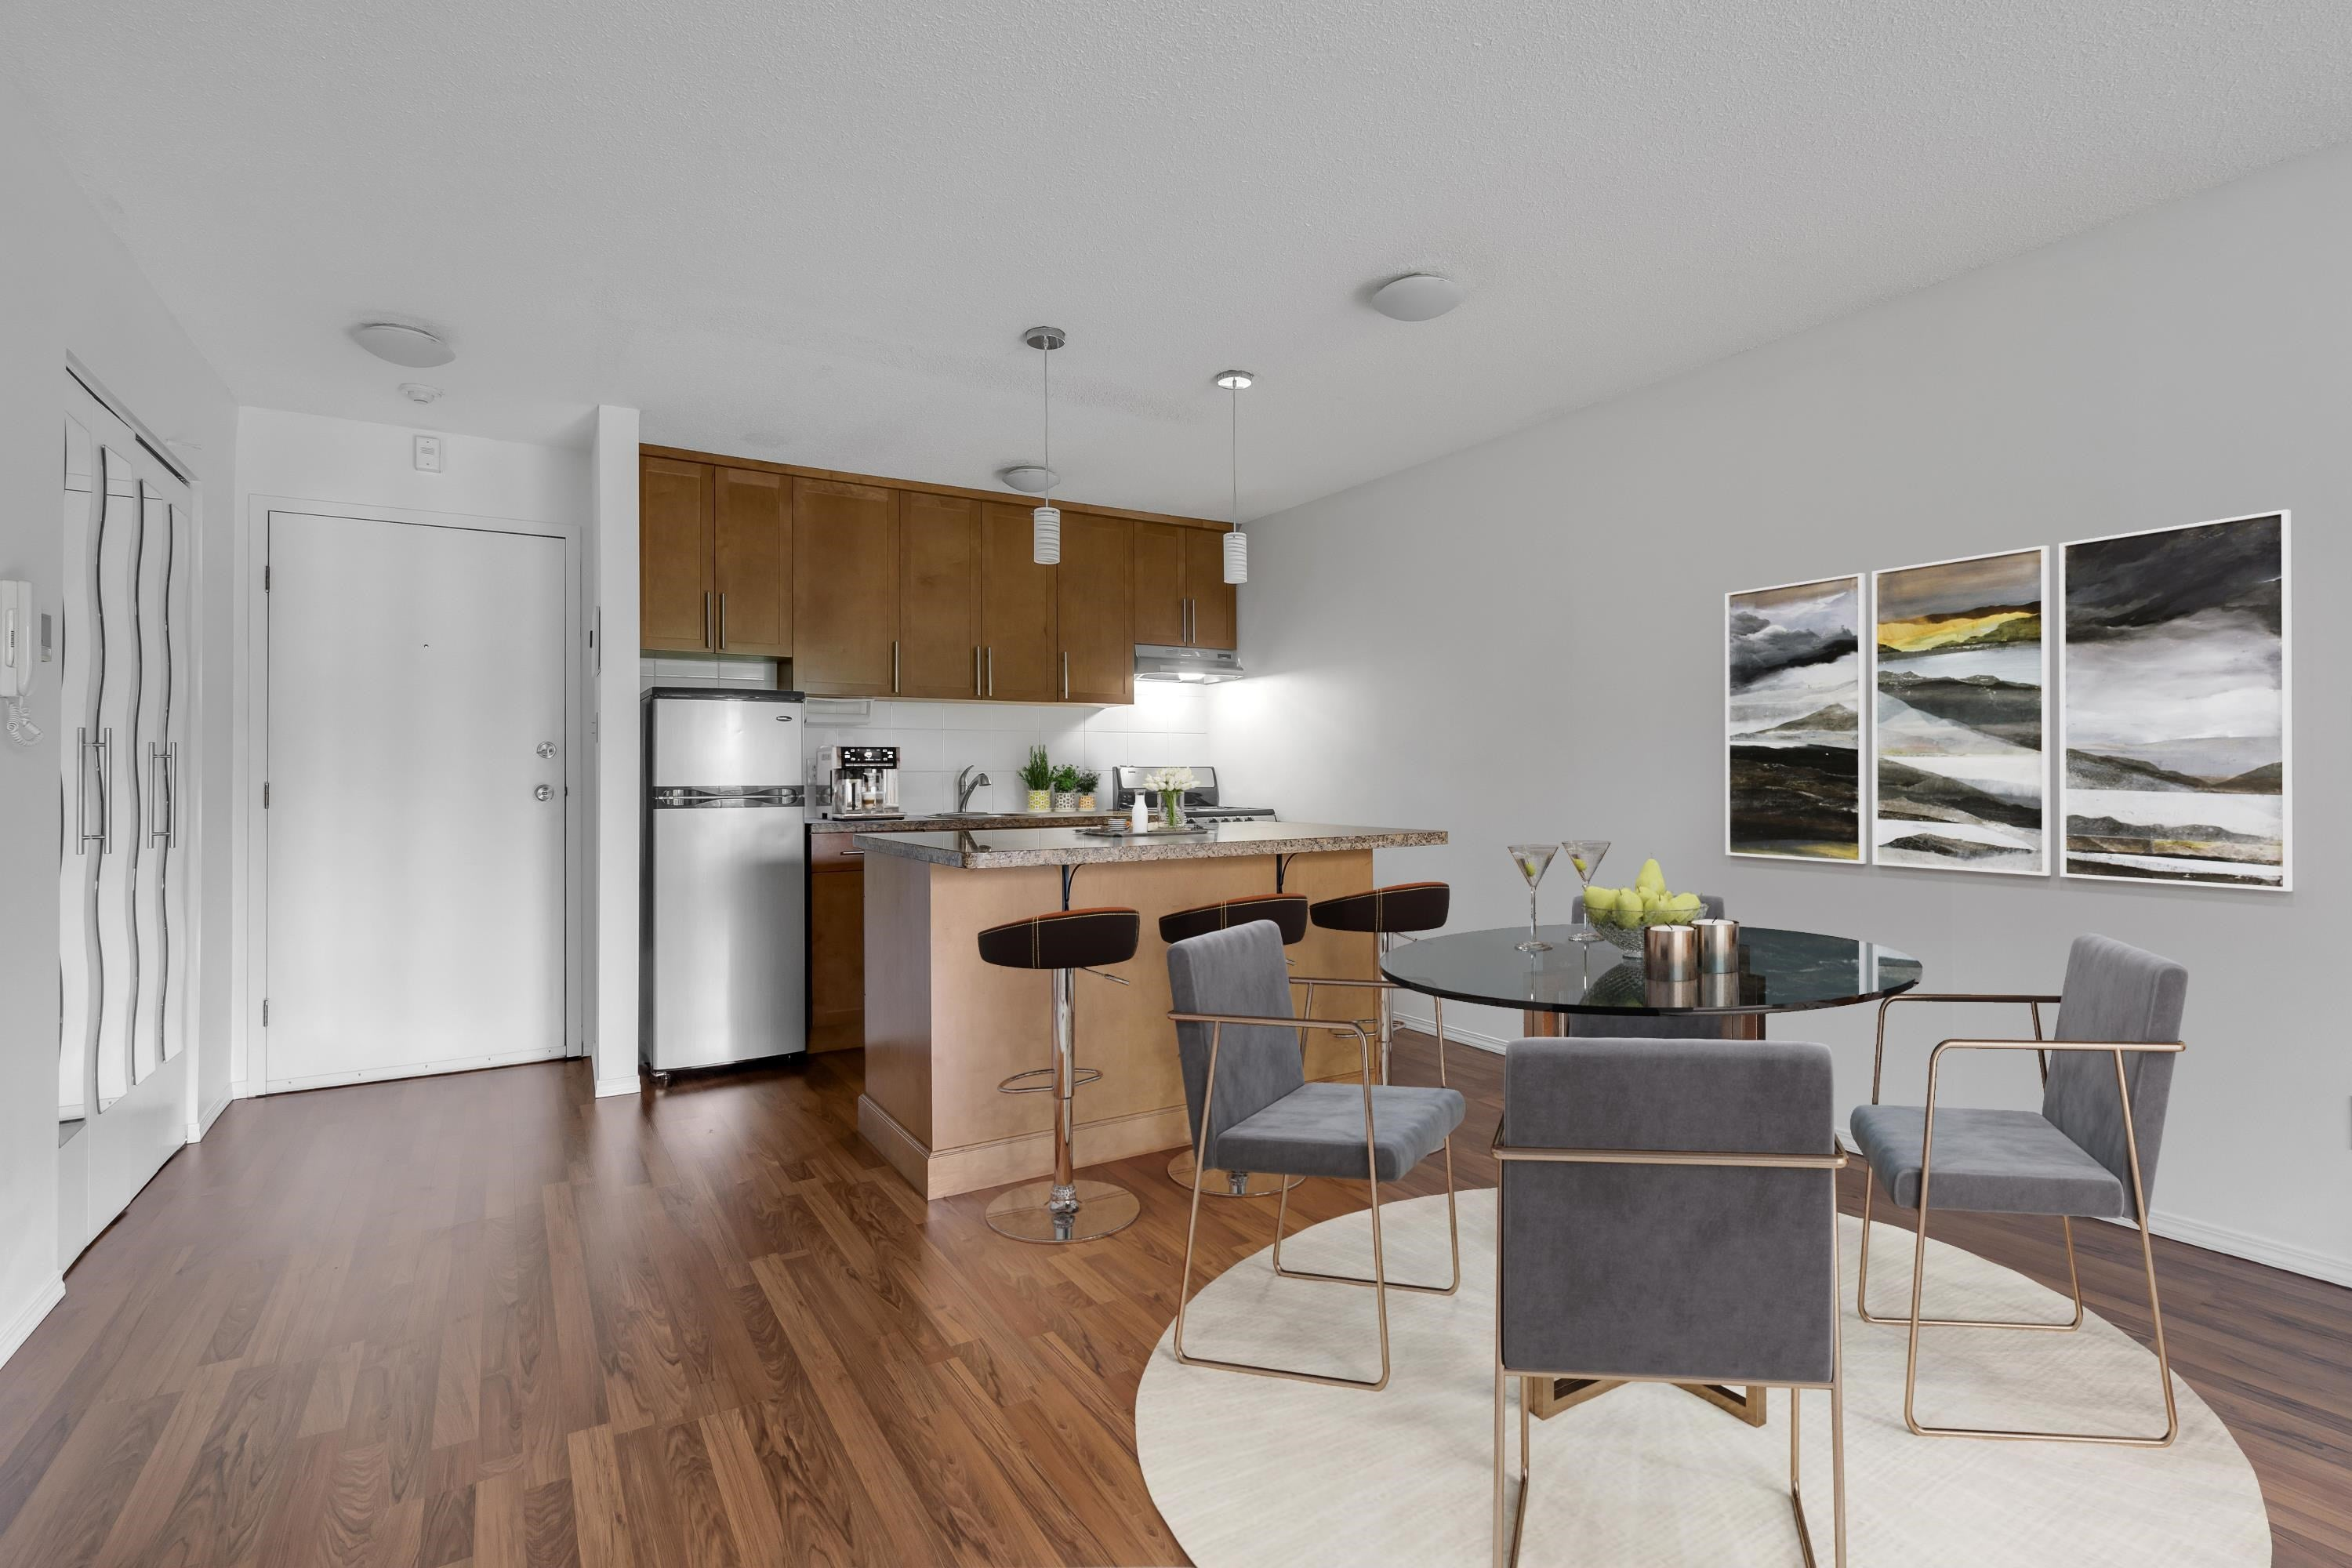 208 270 WEST 3RD STREET - Lower Lonsdale Apartment/Condo for sale, 1 Bedroom (R2615758) - #4